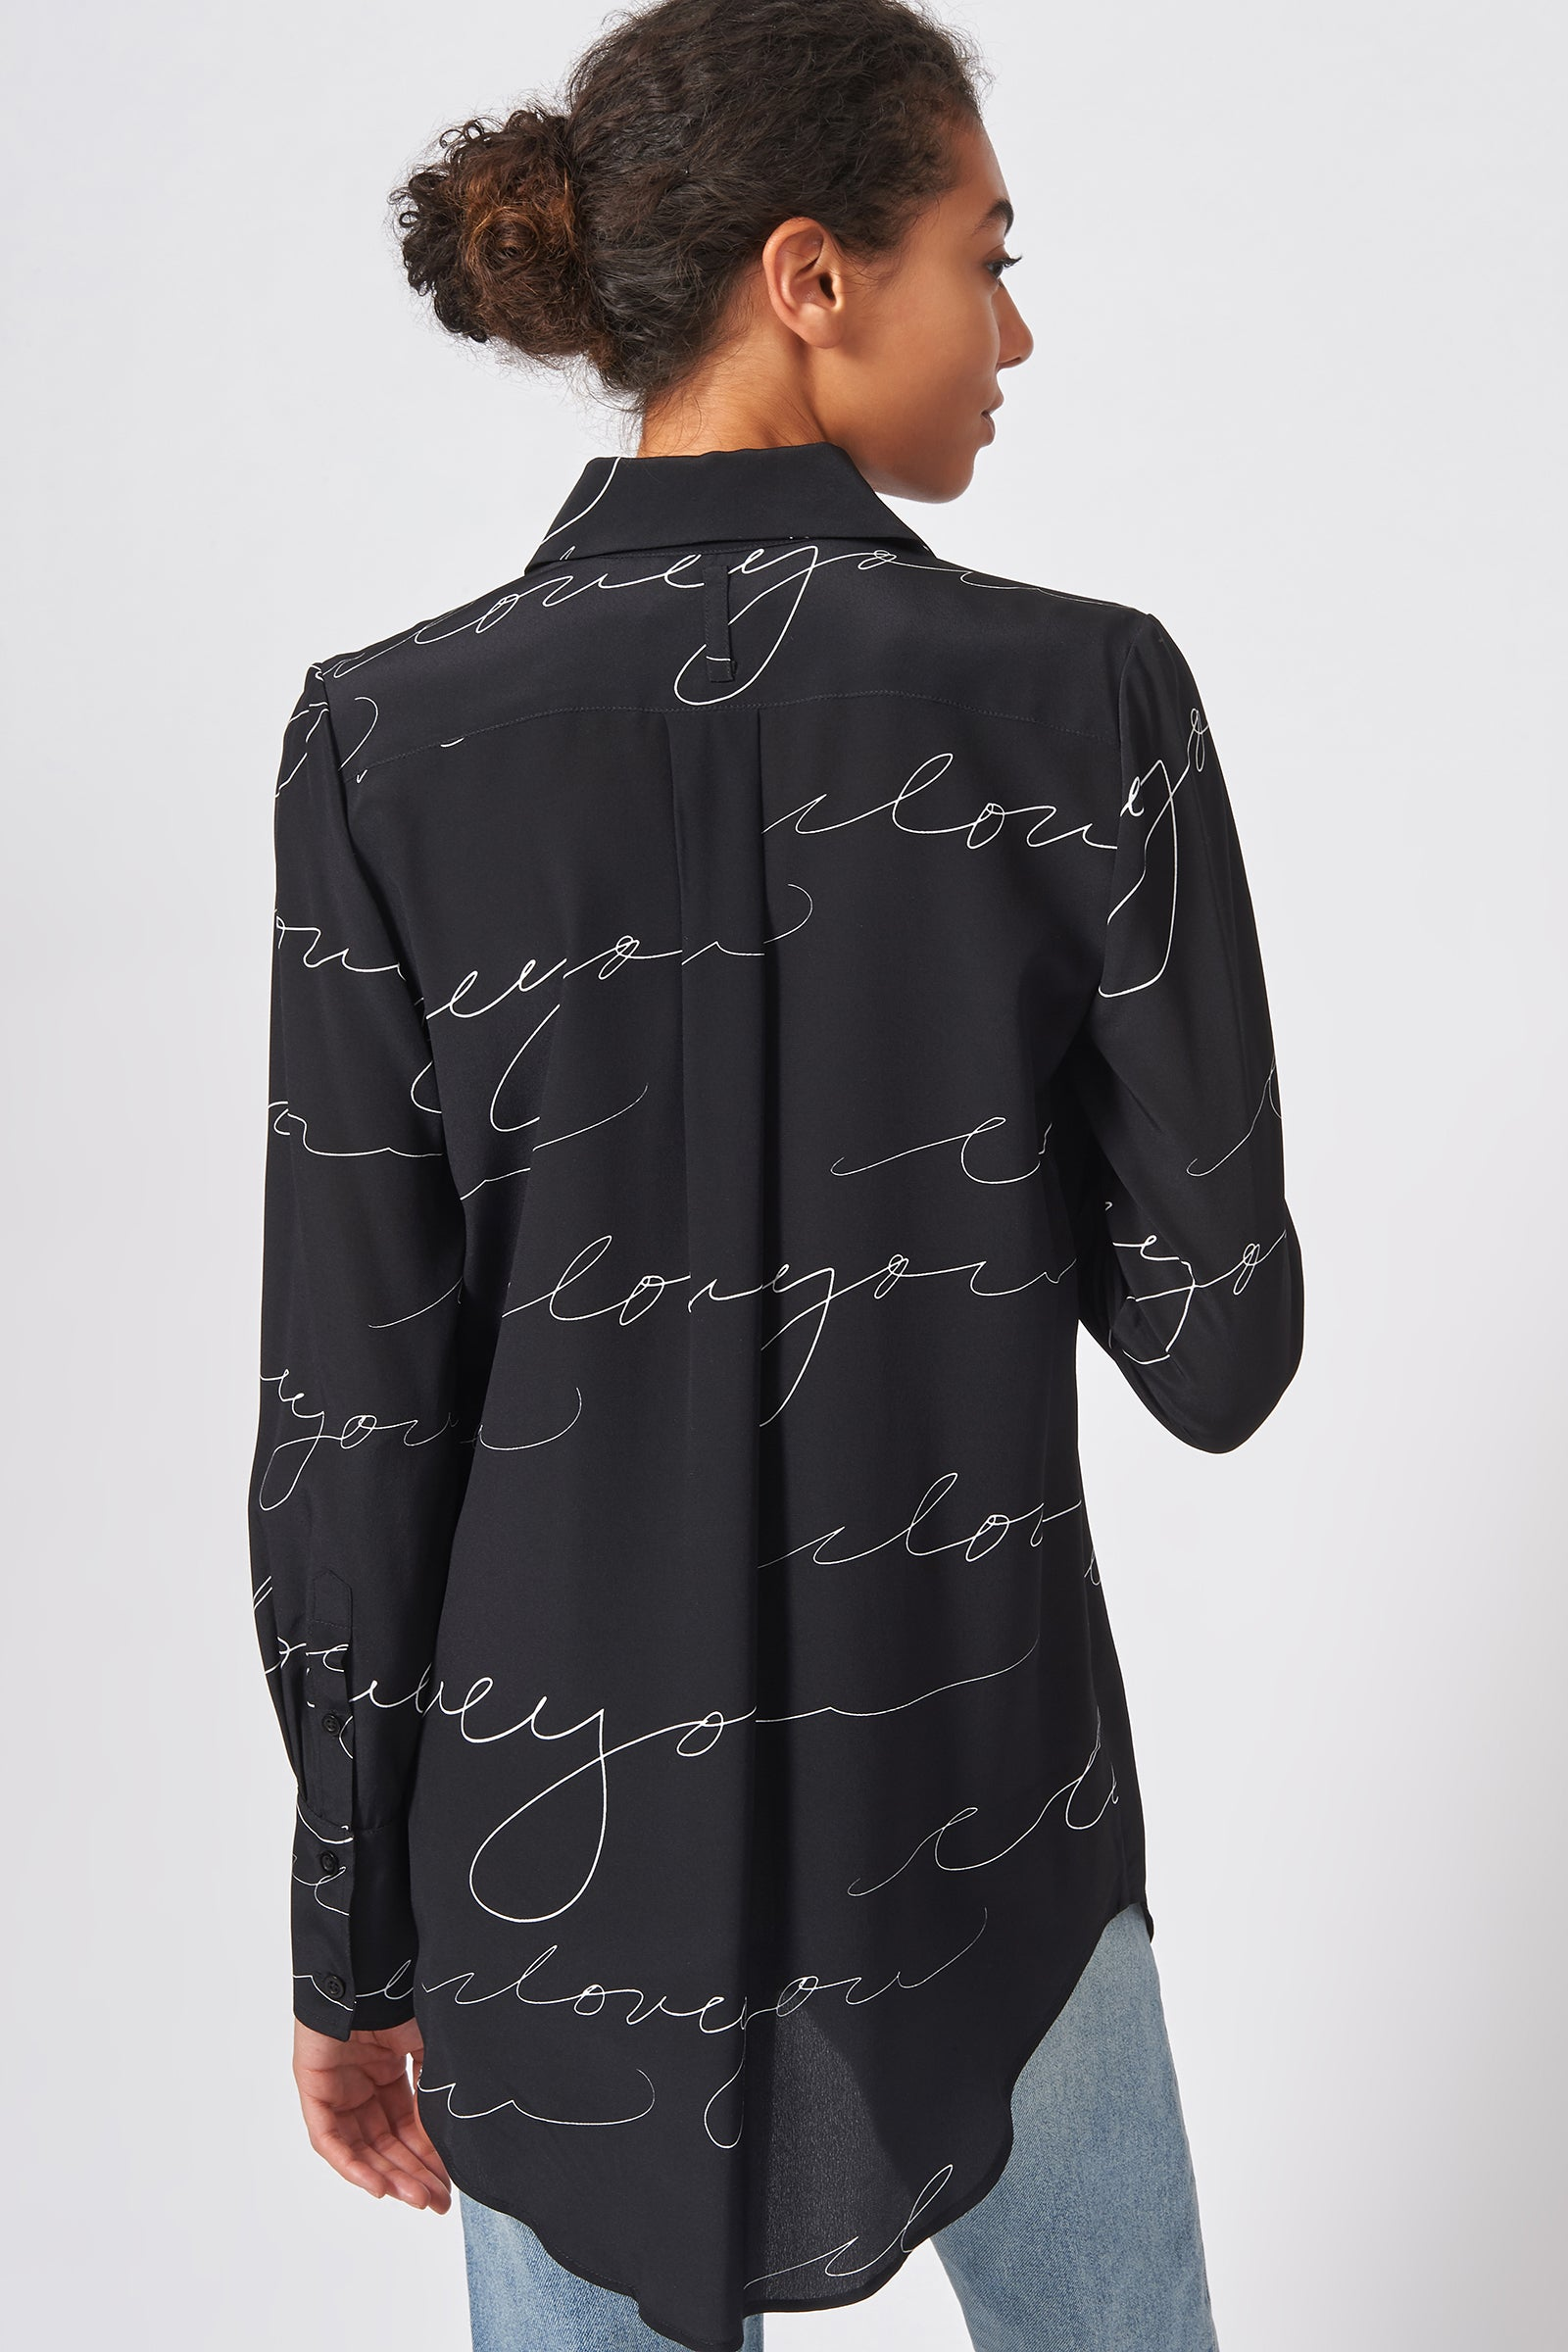 Kal Rieman Shirt Tail Tunic in Black I Love You Print on Model Side View